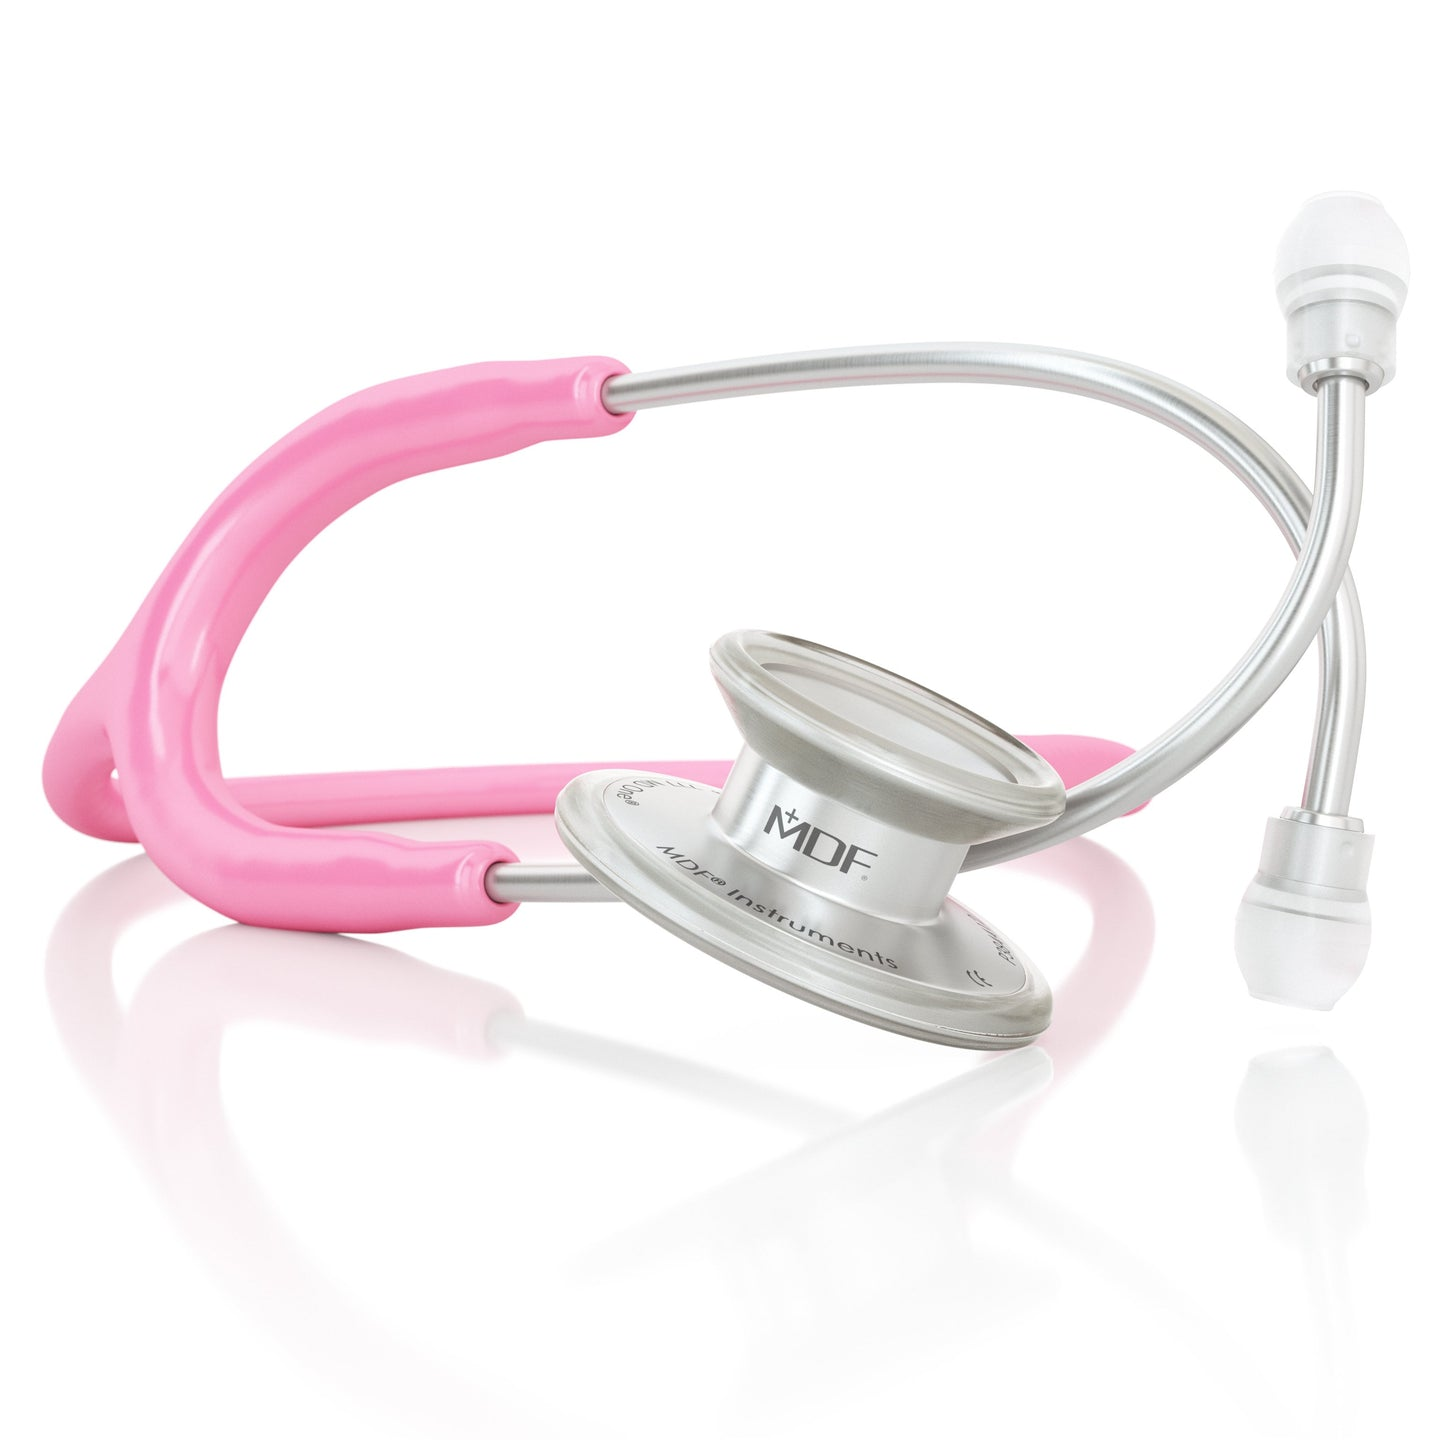 MDF® MD One® Adult Stainless Steel Stethoscope - Silver - Pink